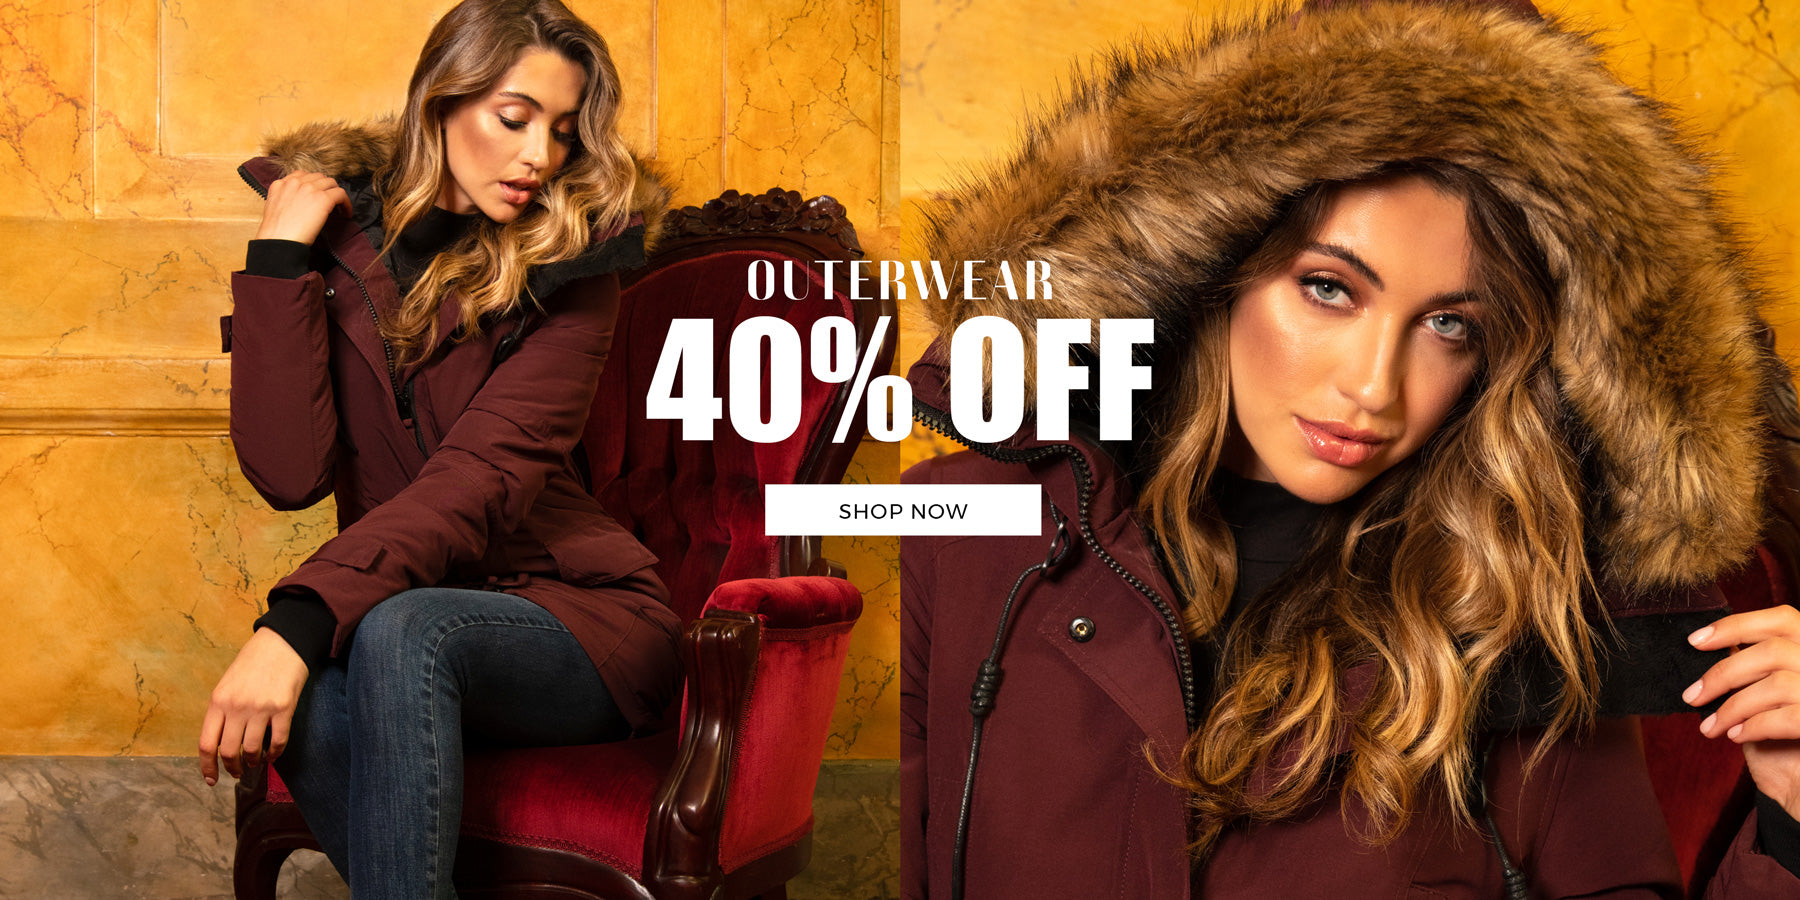 Sirens | Outerwear 40% Off - Shop Now